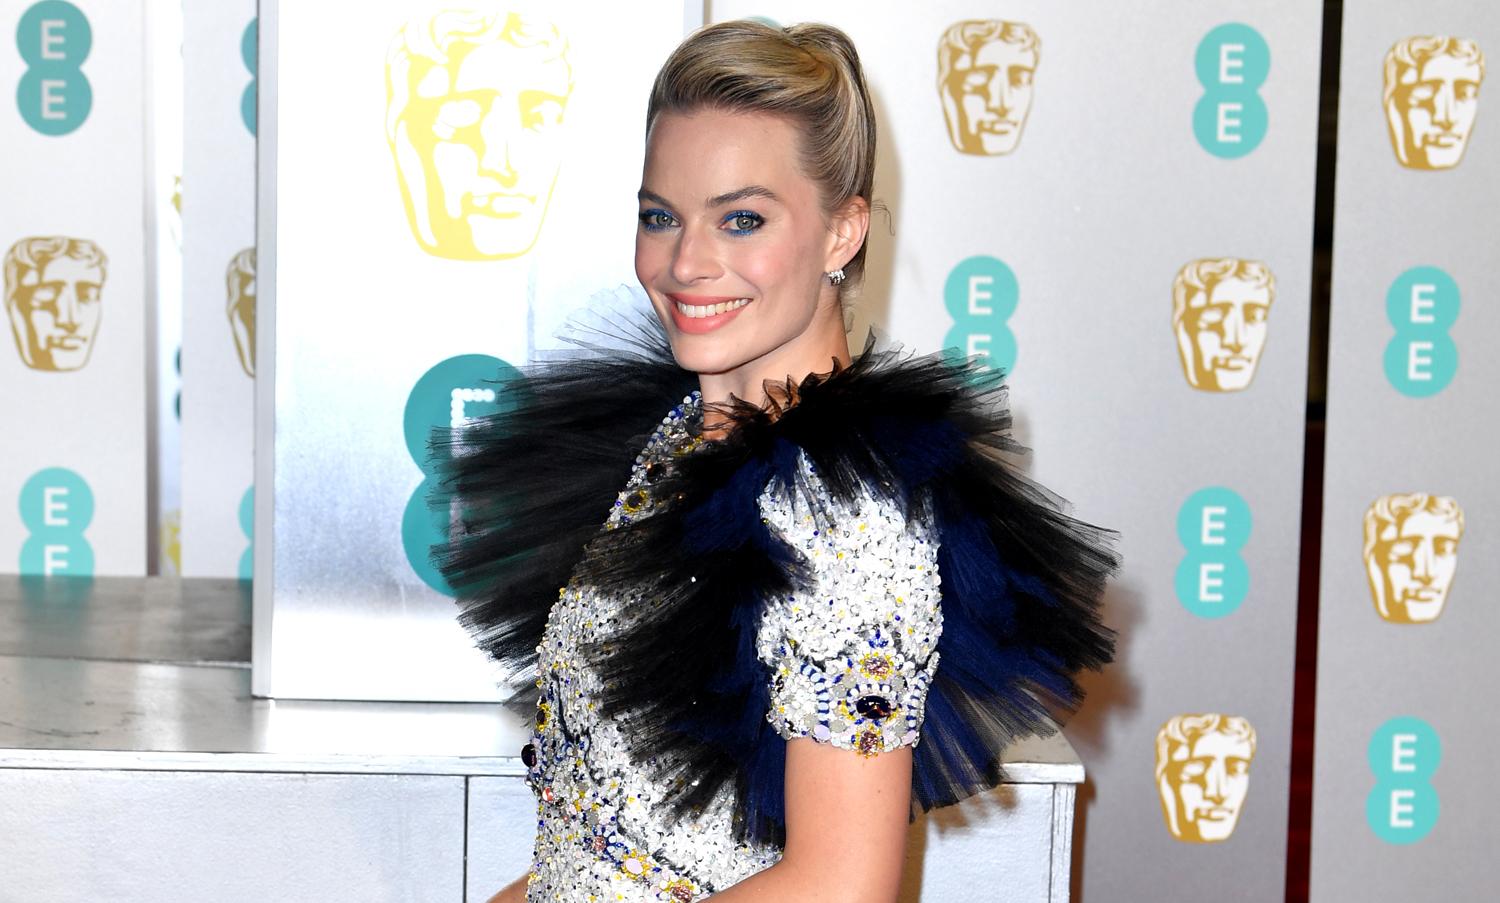 Bafta Awards 2019: Margot Robbie Has A Haute Couture Moment At BAFTAs 2019